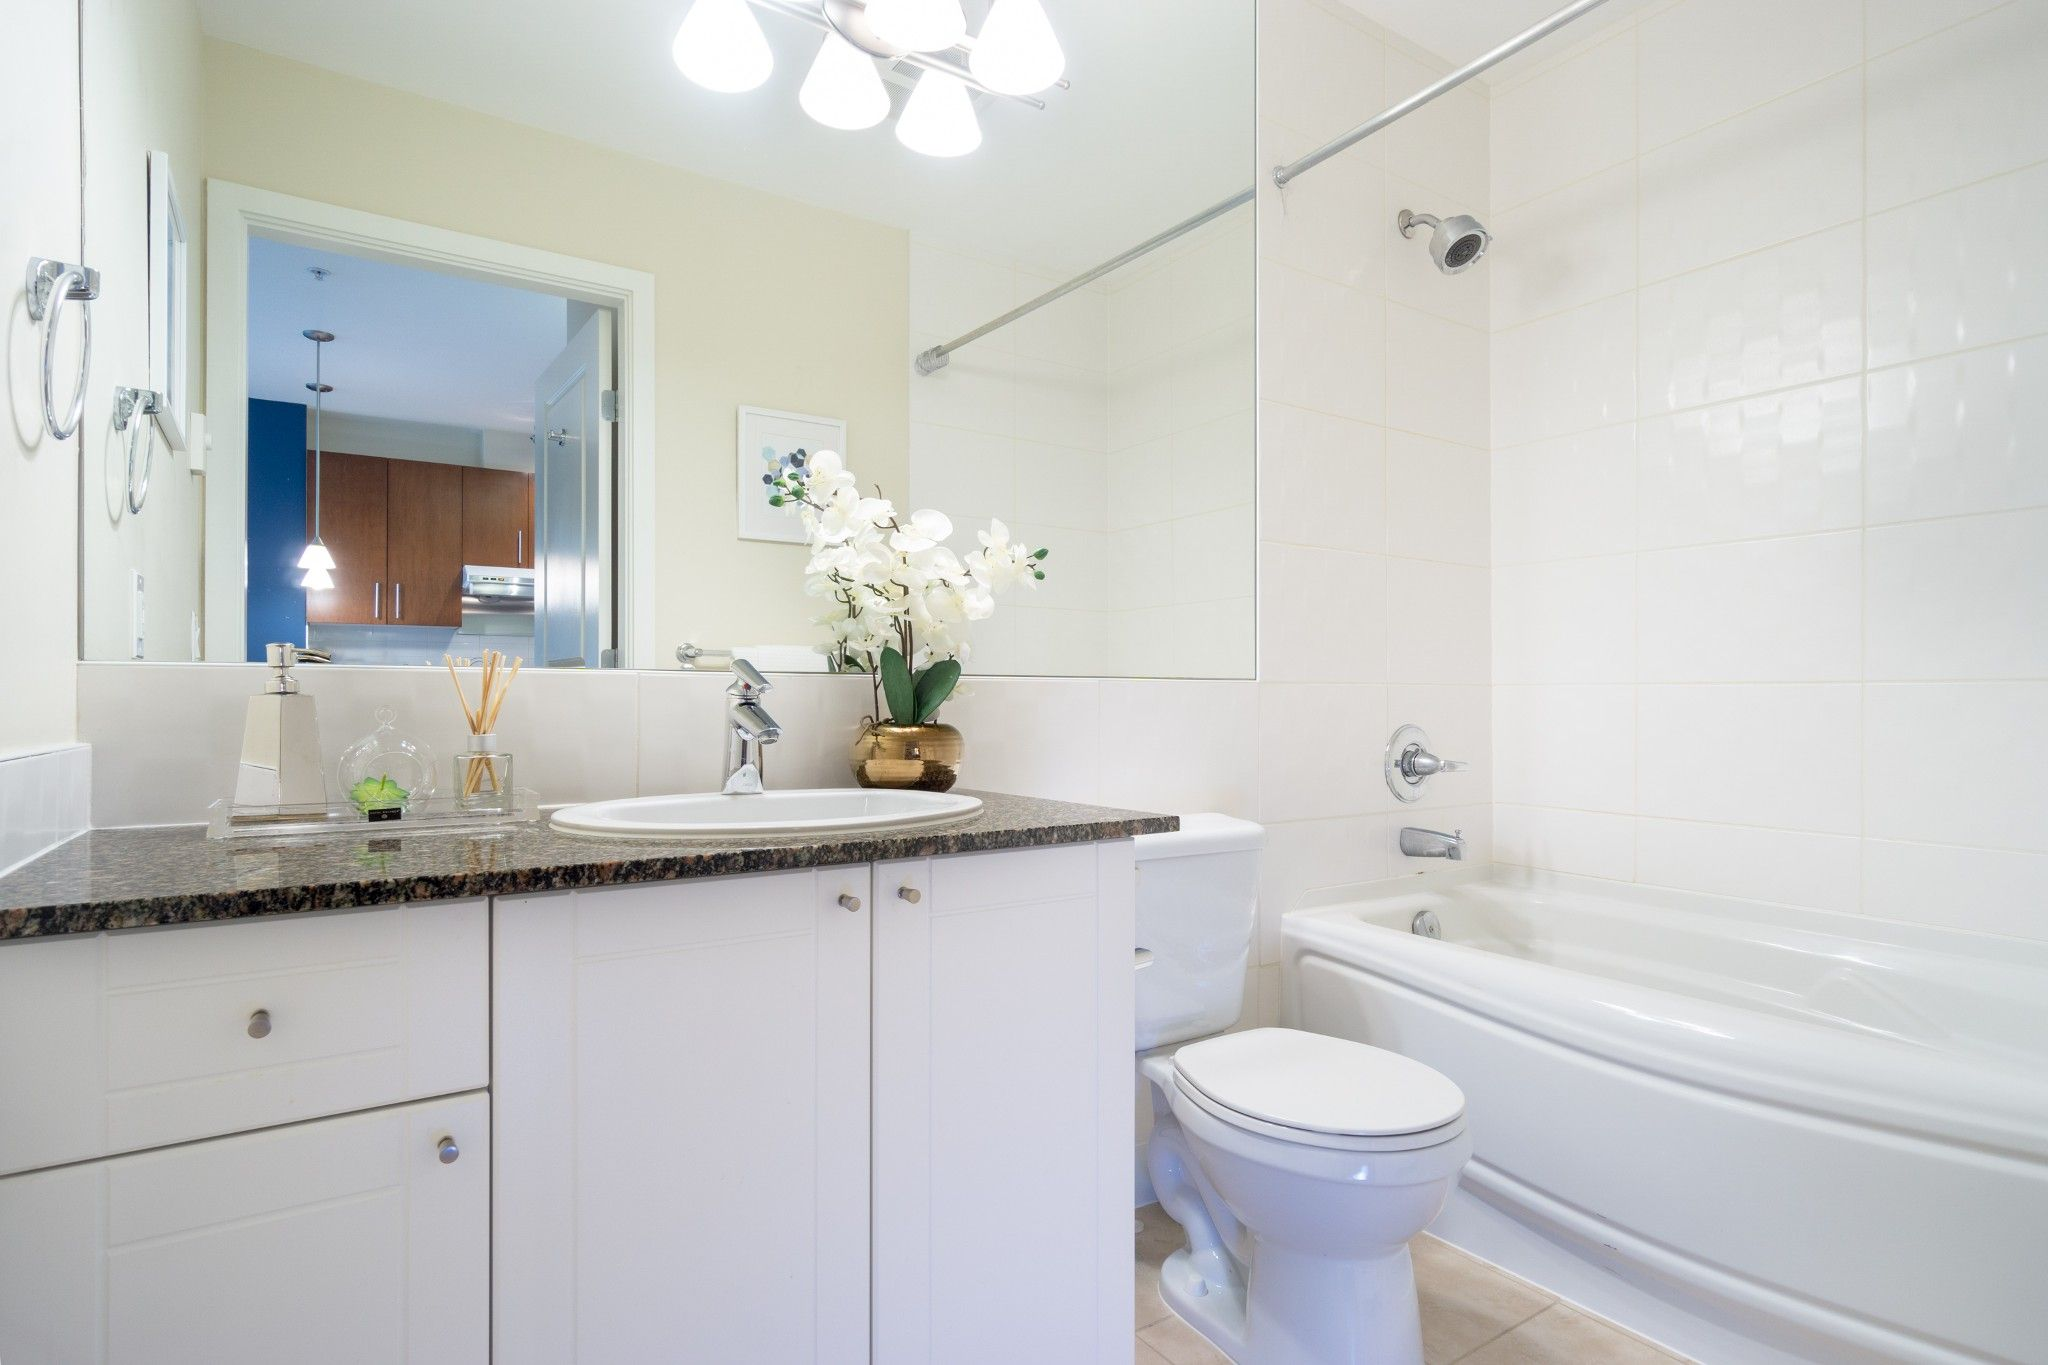 Photo 24: Photos: 208 3551 FOSTER Avenue in Vancouver: Collingwood VE Condo for sale (Vancouver East)  : MLS®# R2291555